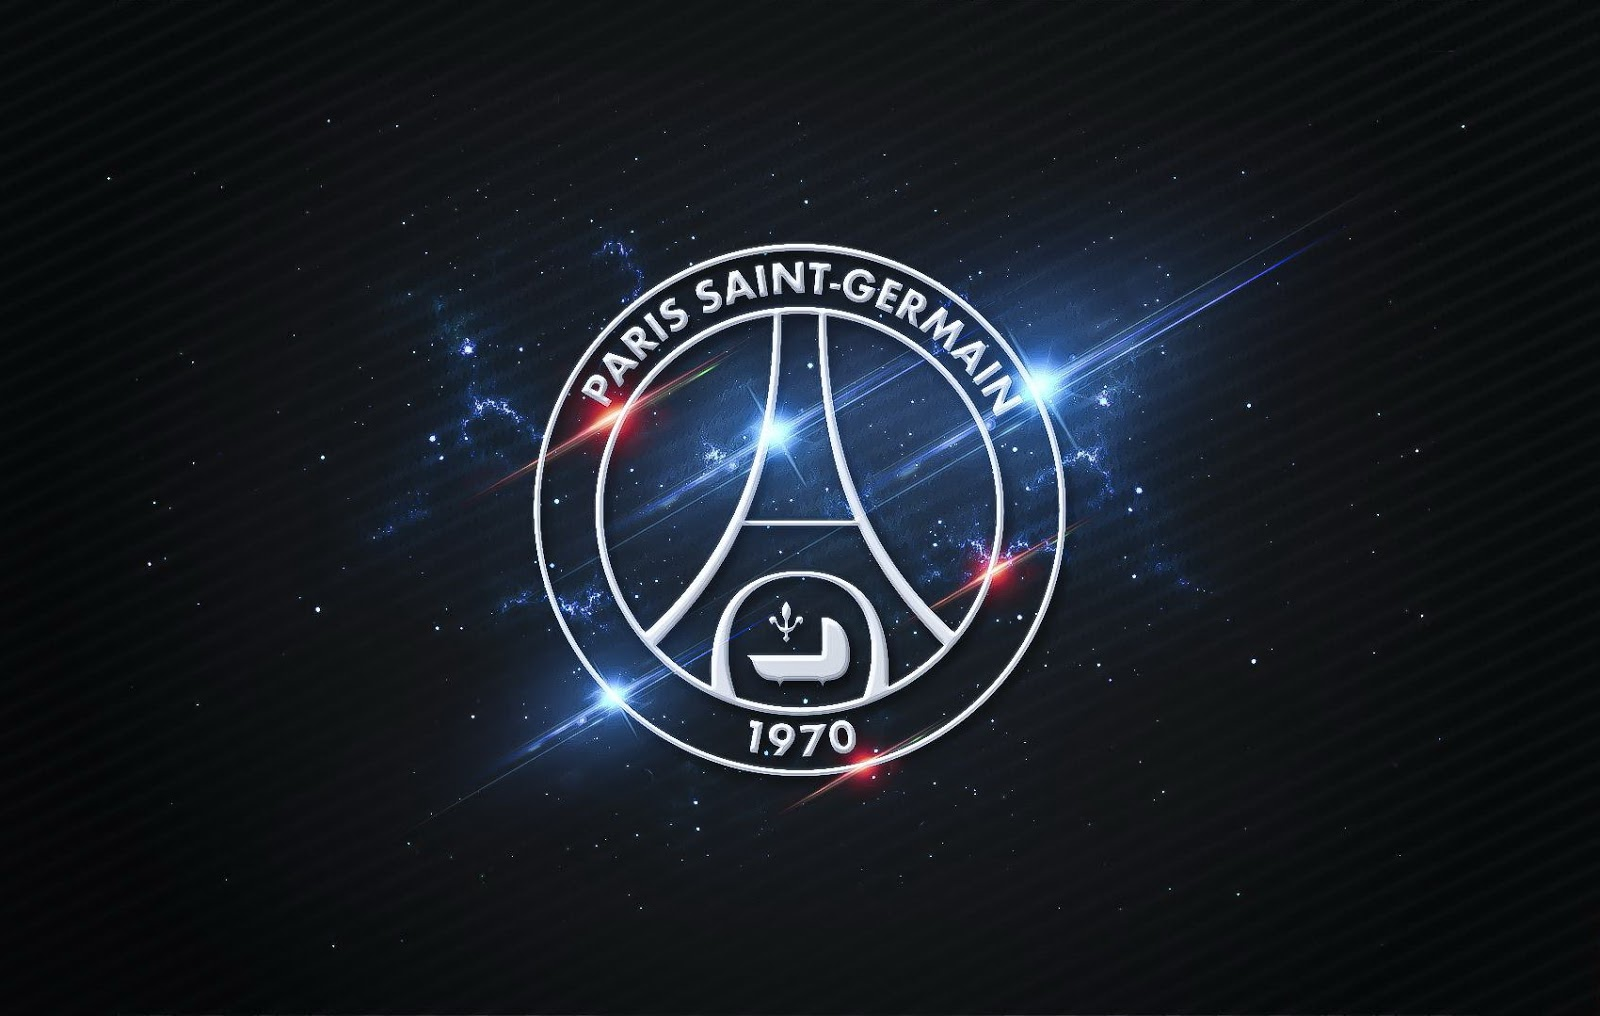 [50+] PSG Wallpaper on WallpaperSafari